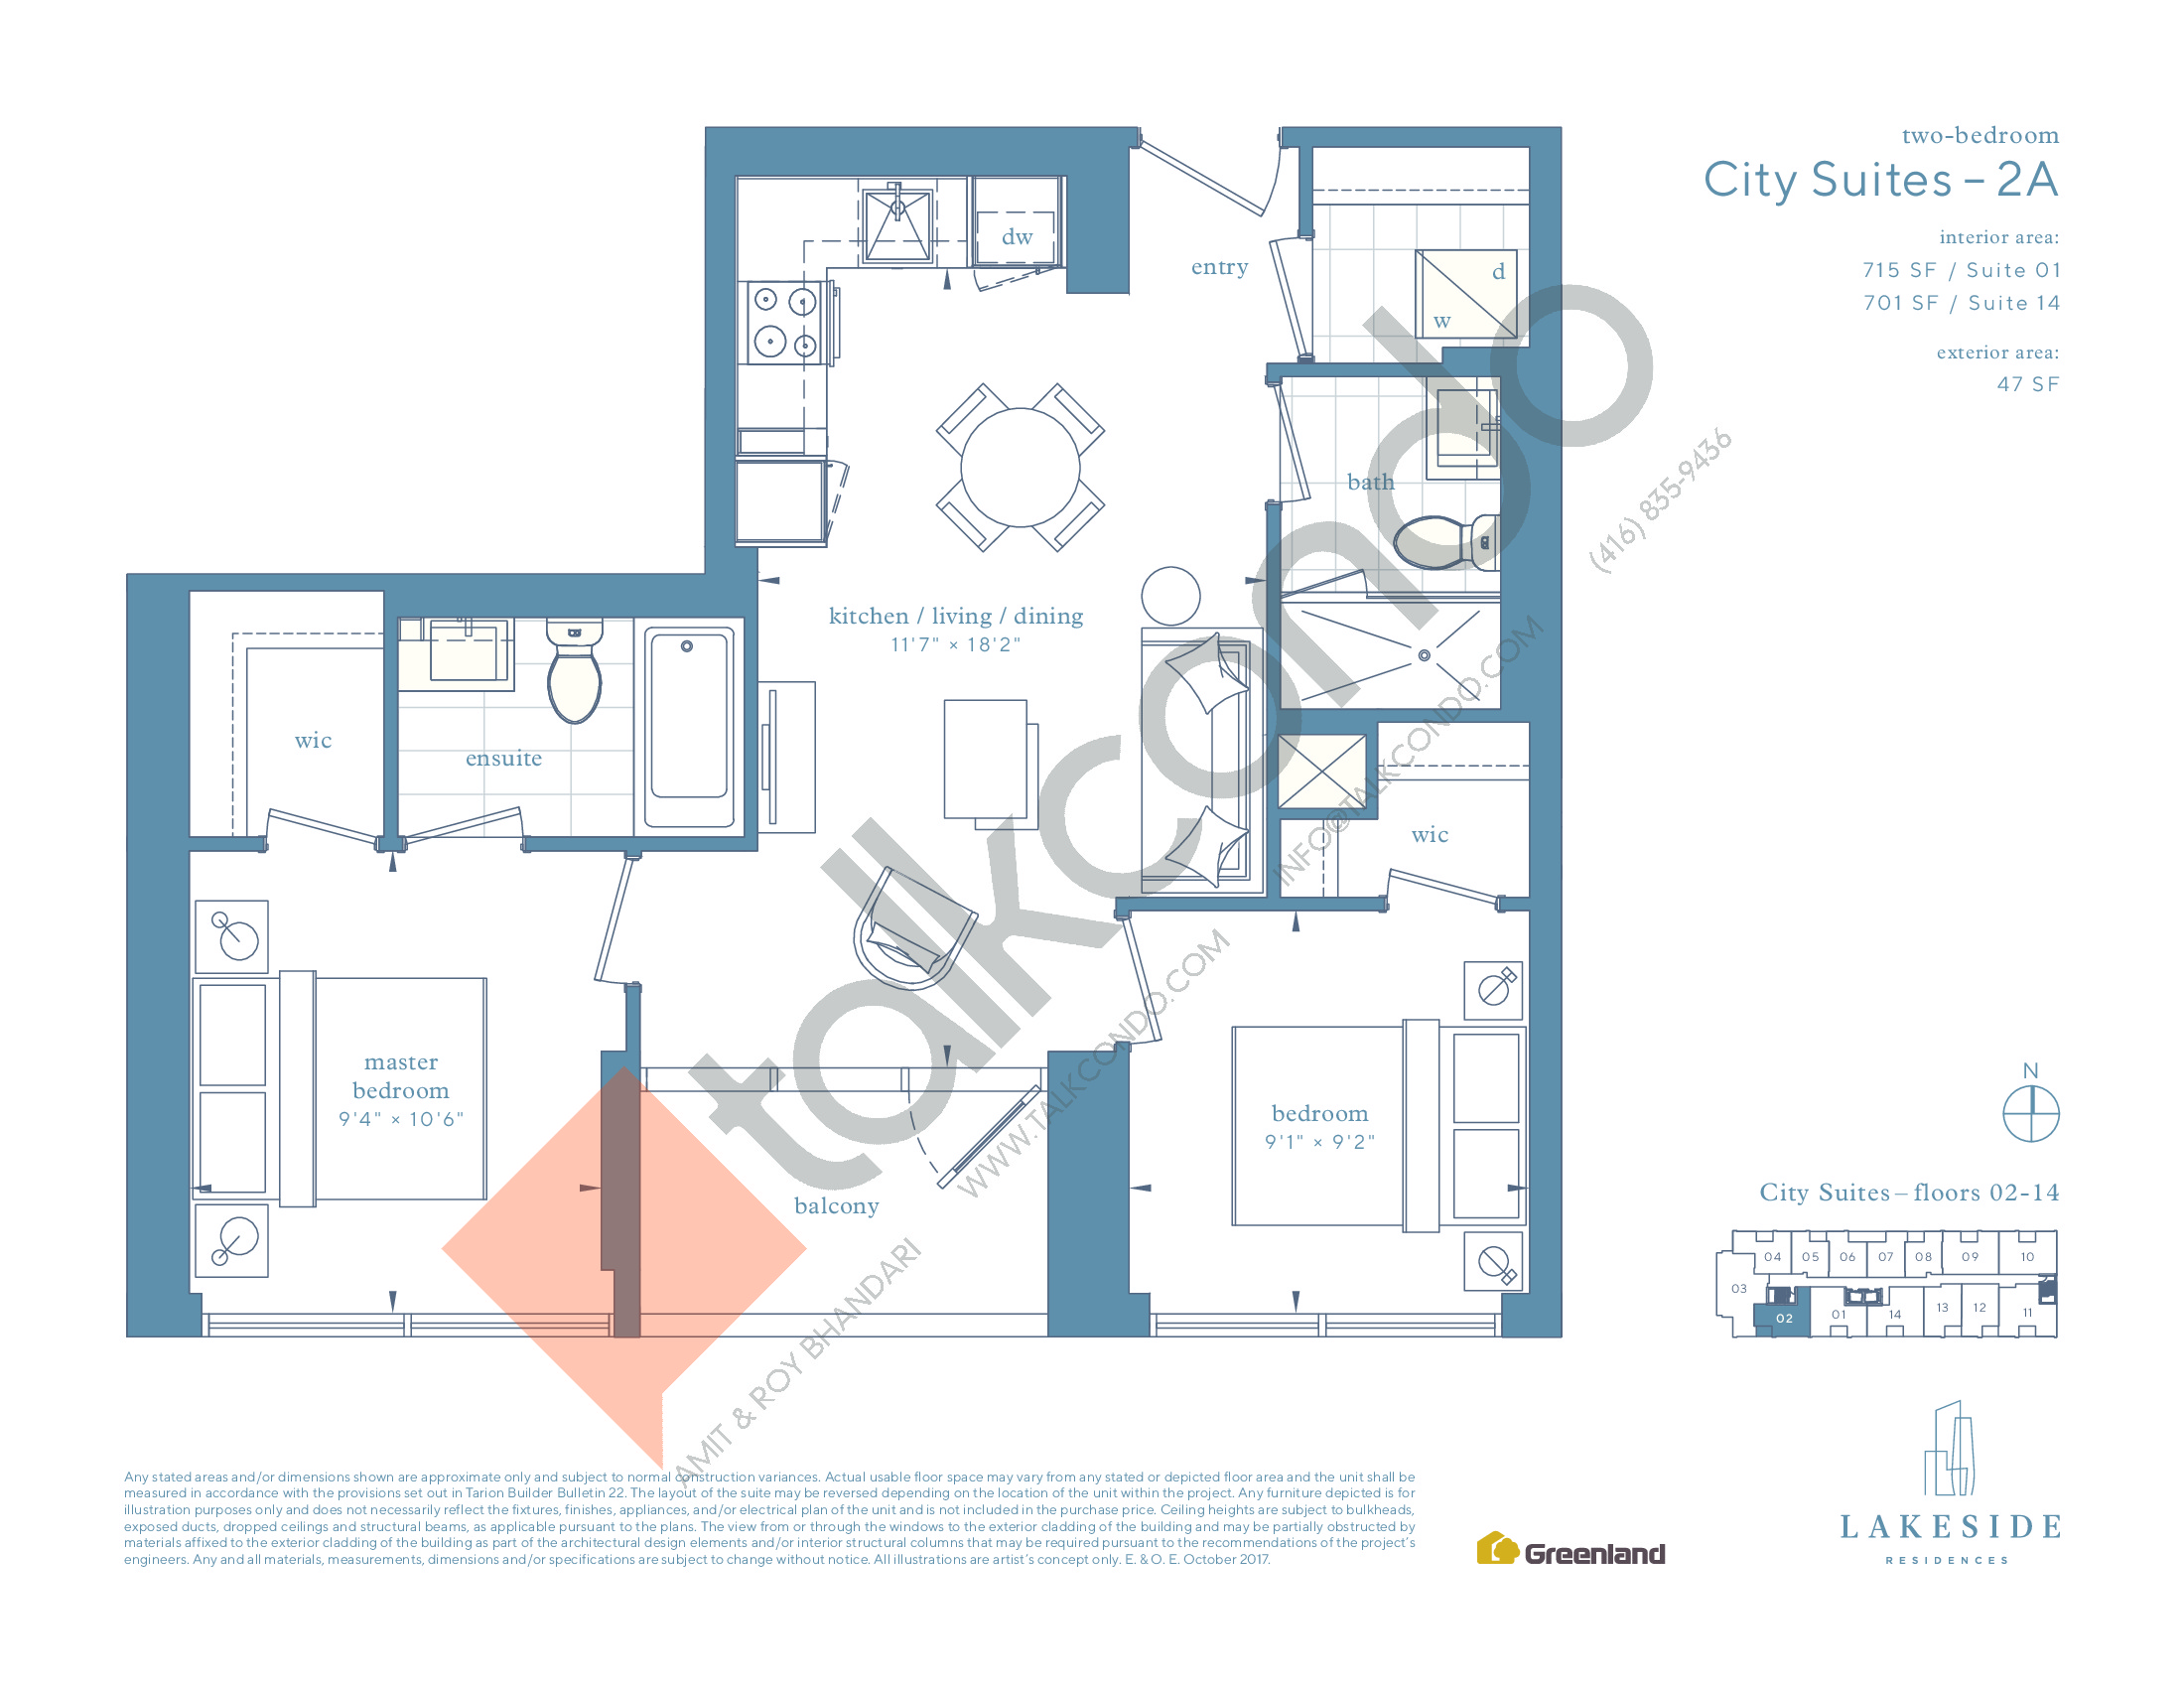 City Suites - 2A Floor Plan at Lakeside Residences - 715 sq.ft